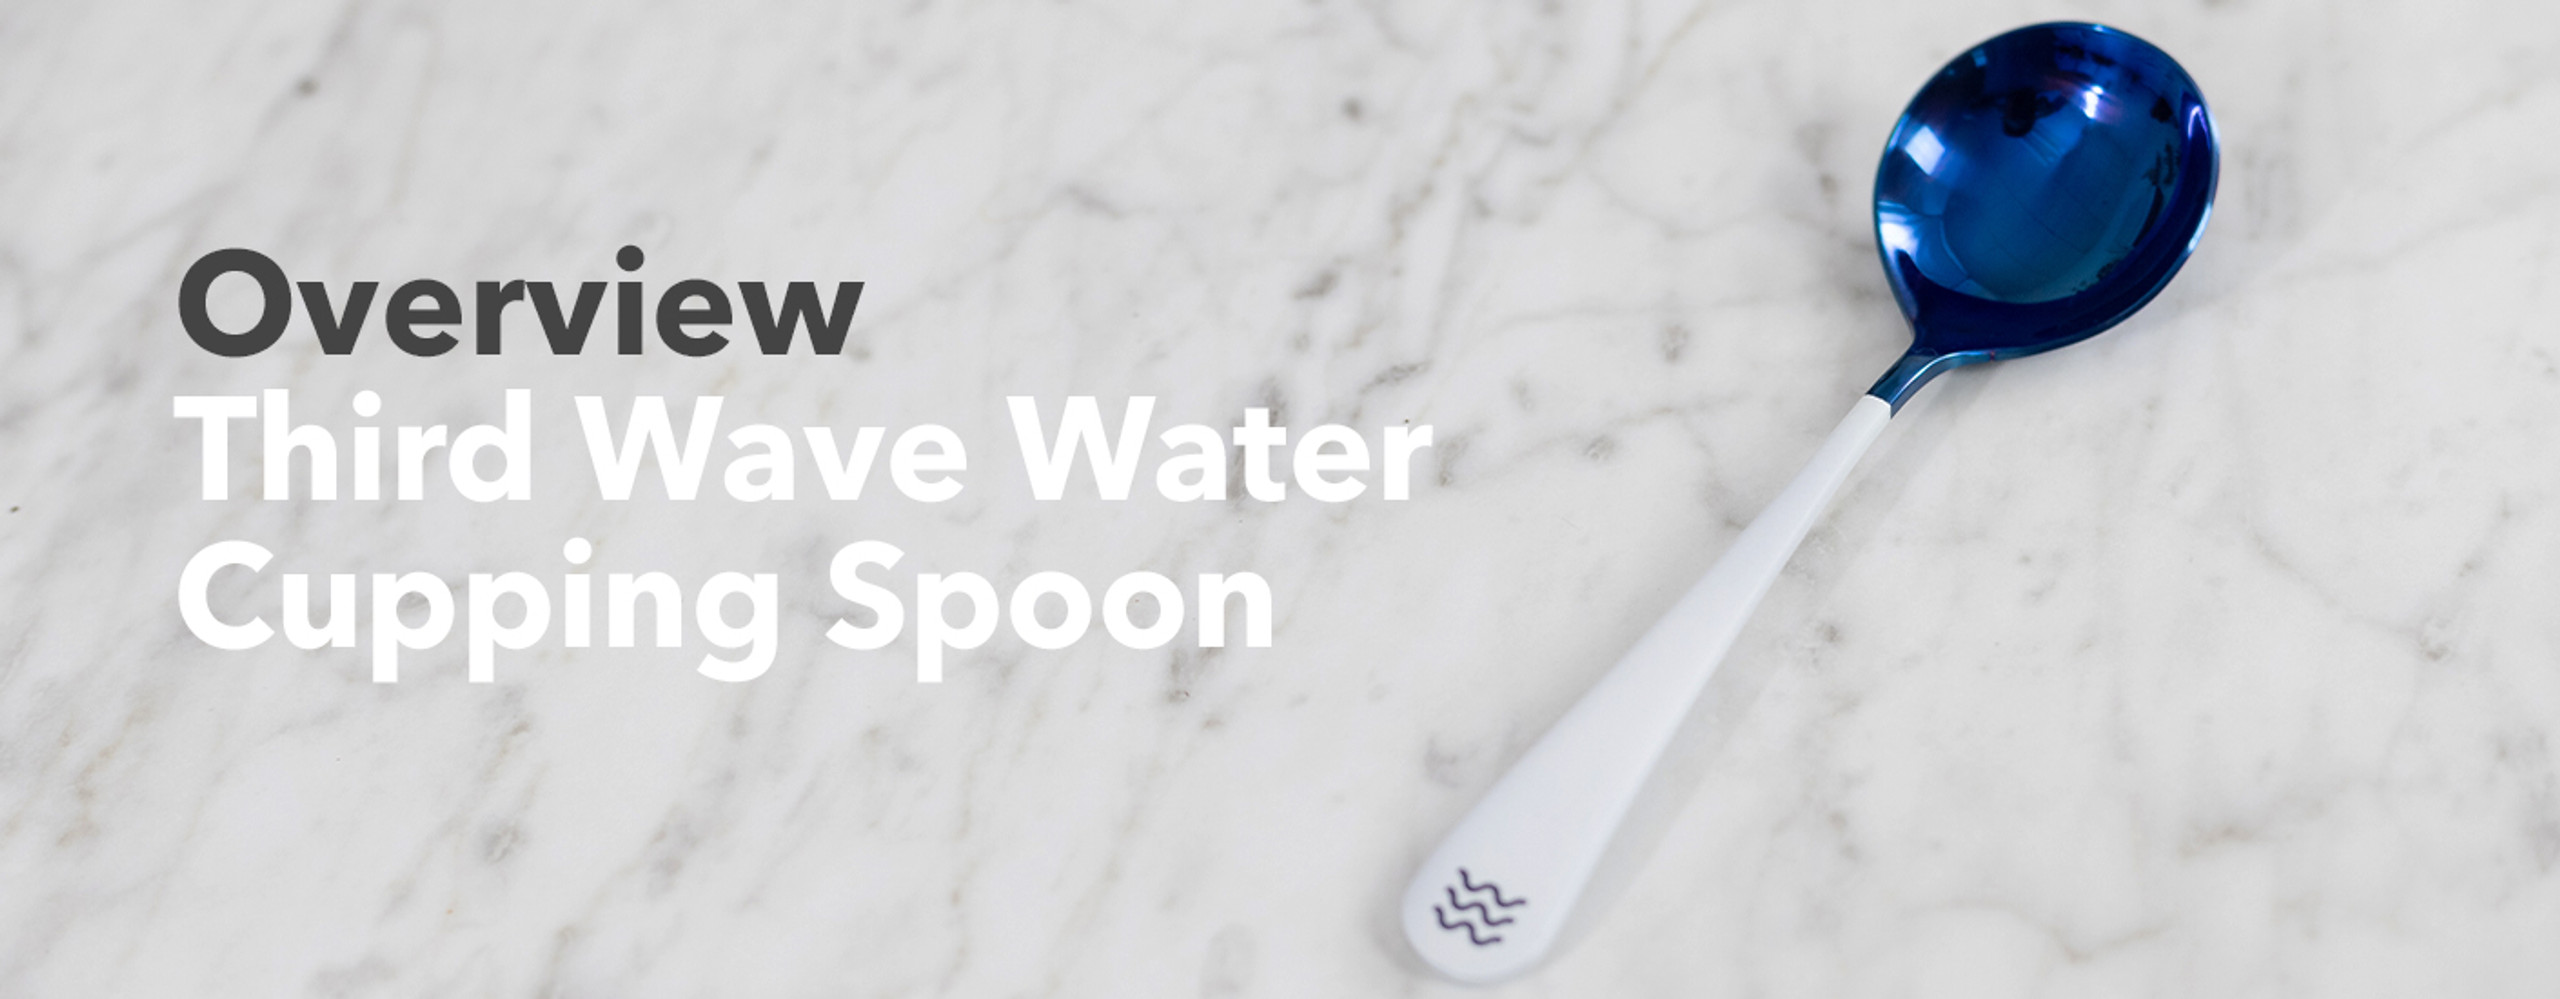 Third Wave Water Cupping Spoon